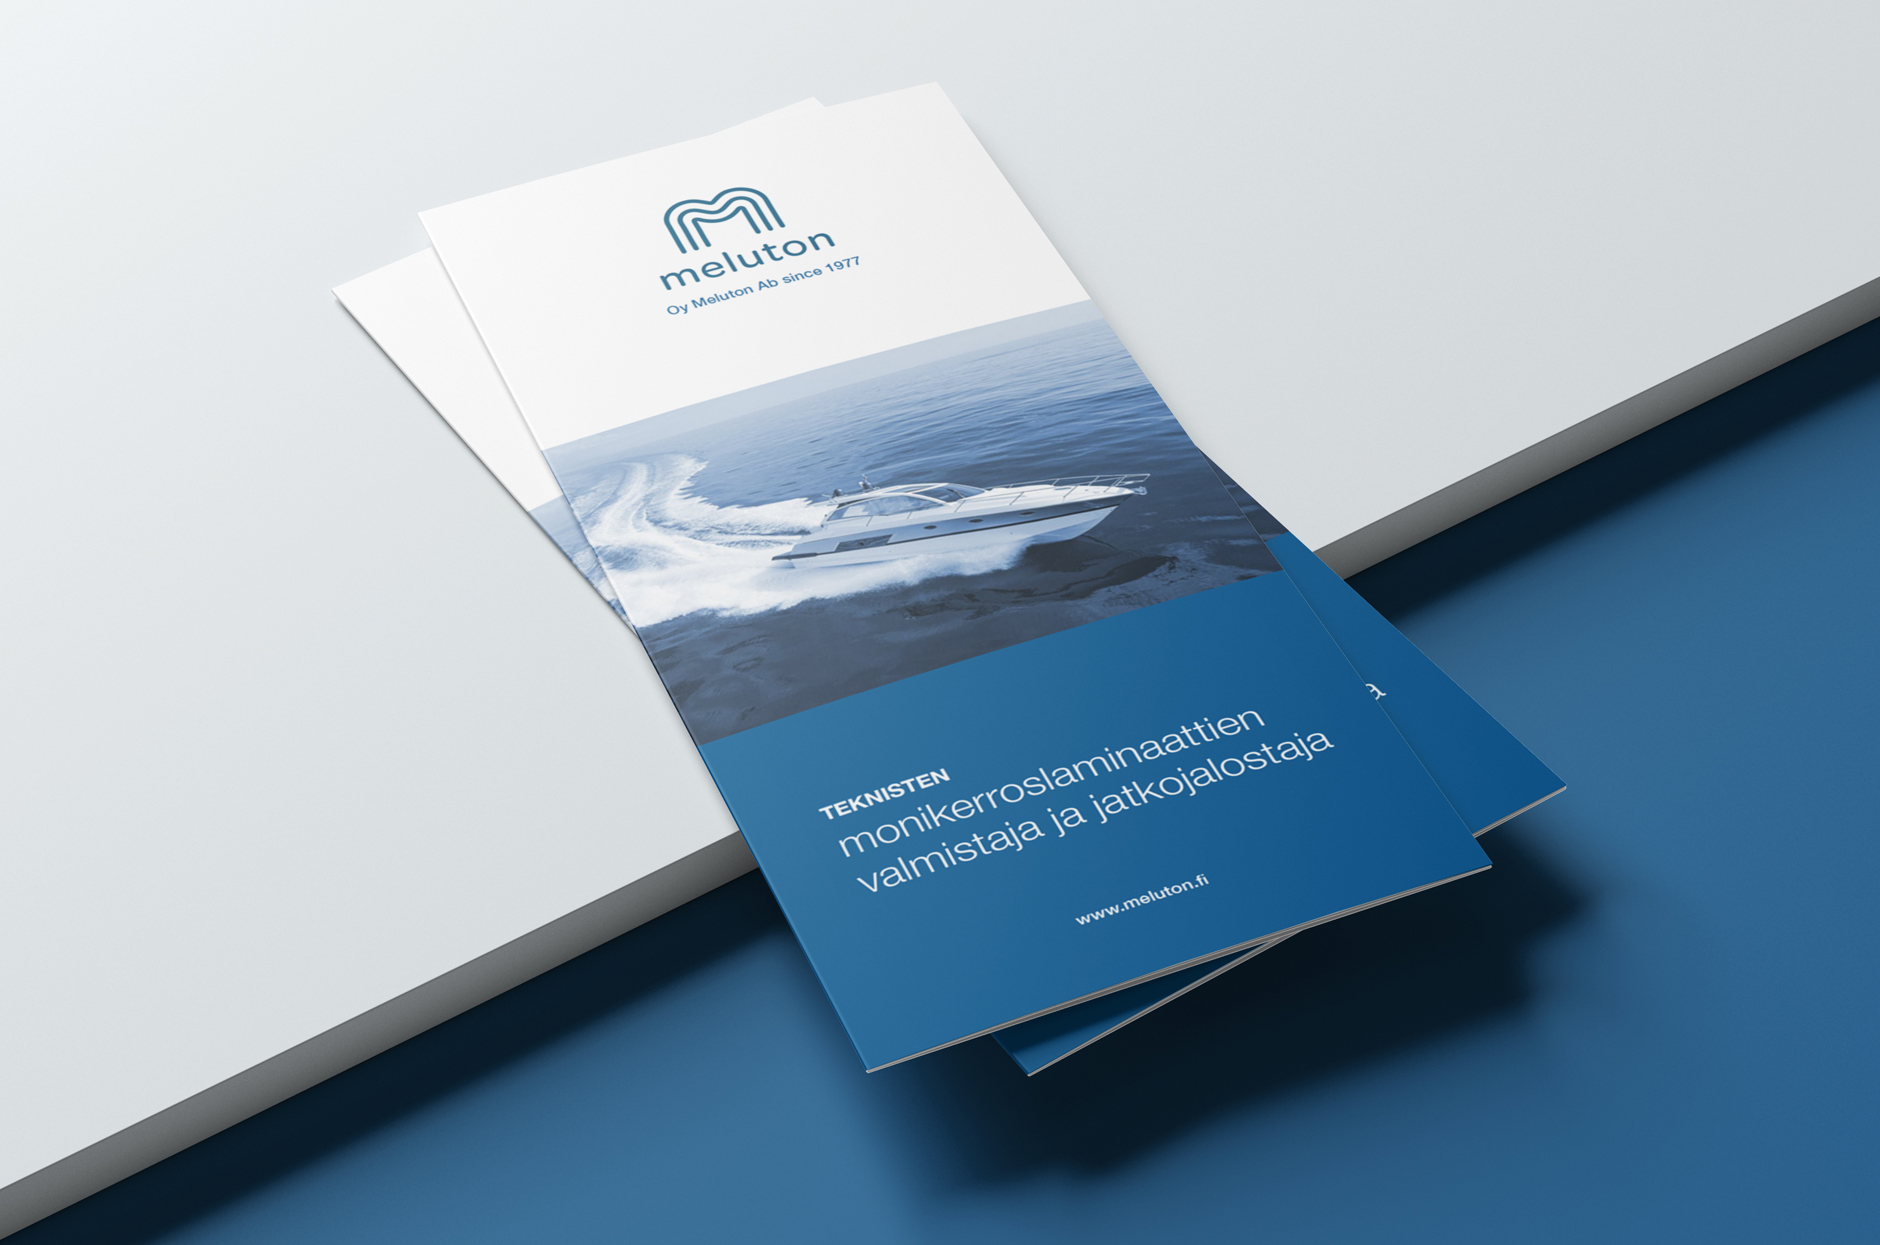 Meluton_brochure_cover